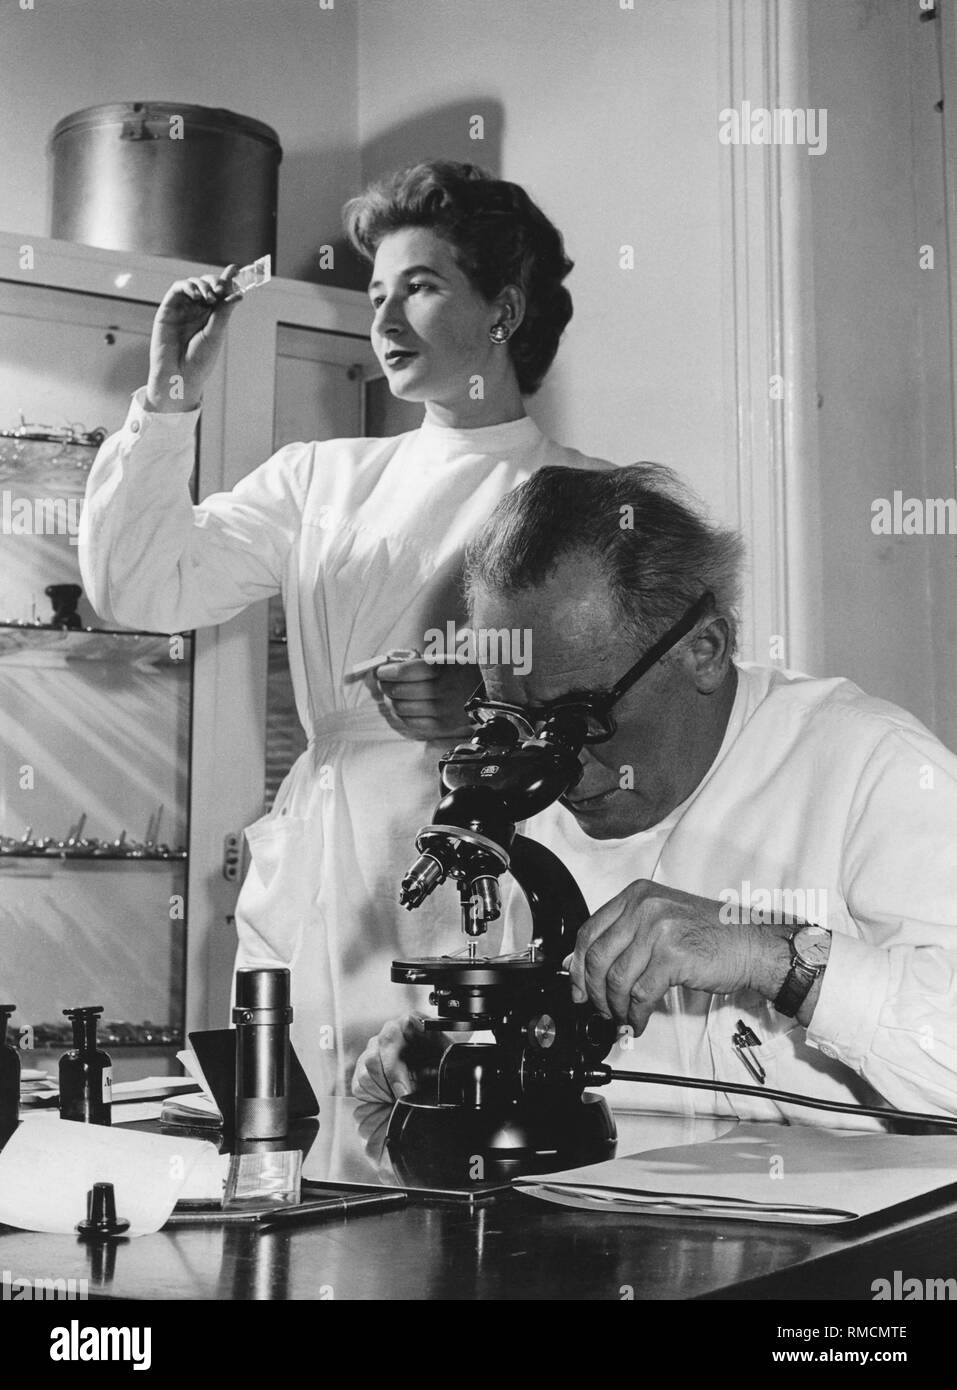 In a doctor's office, 50s Stock Photo - Alamy